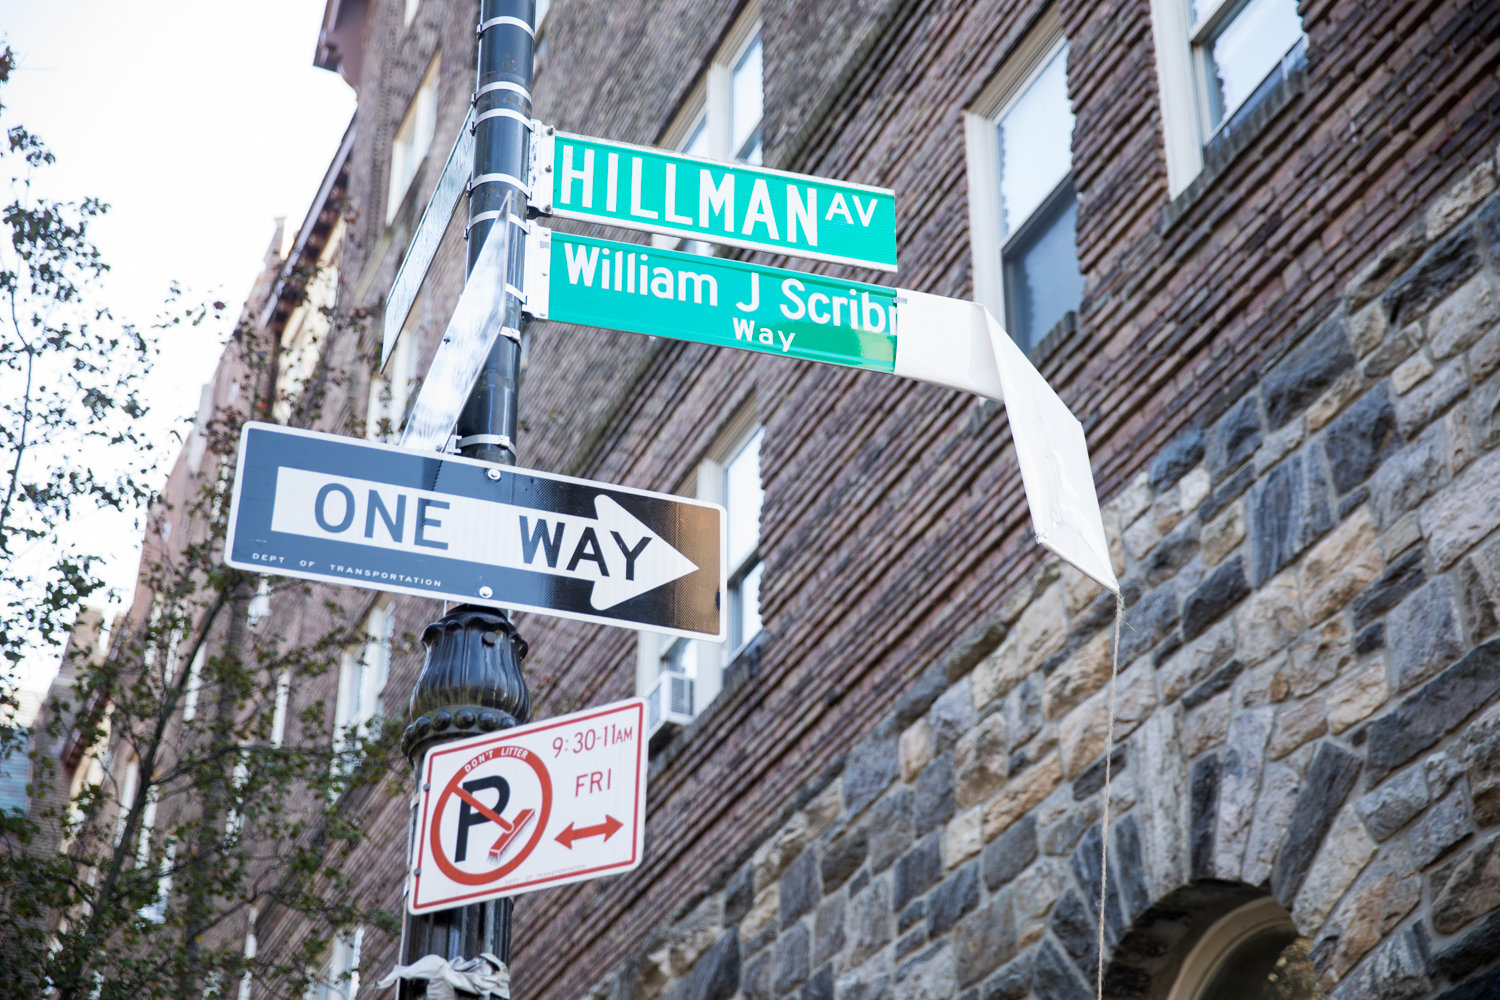 The sign for William J. Scribner Way is unveiled during a Nov. 15 ceremony. The corner of Hillman Avenue and Van Cortlandt Park South is named for the late founder of the Bronx Arts Ensemble, which is headquartered nearby.